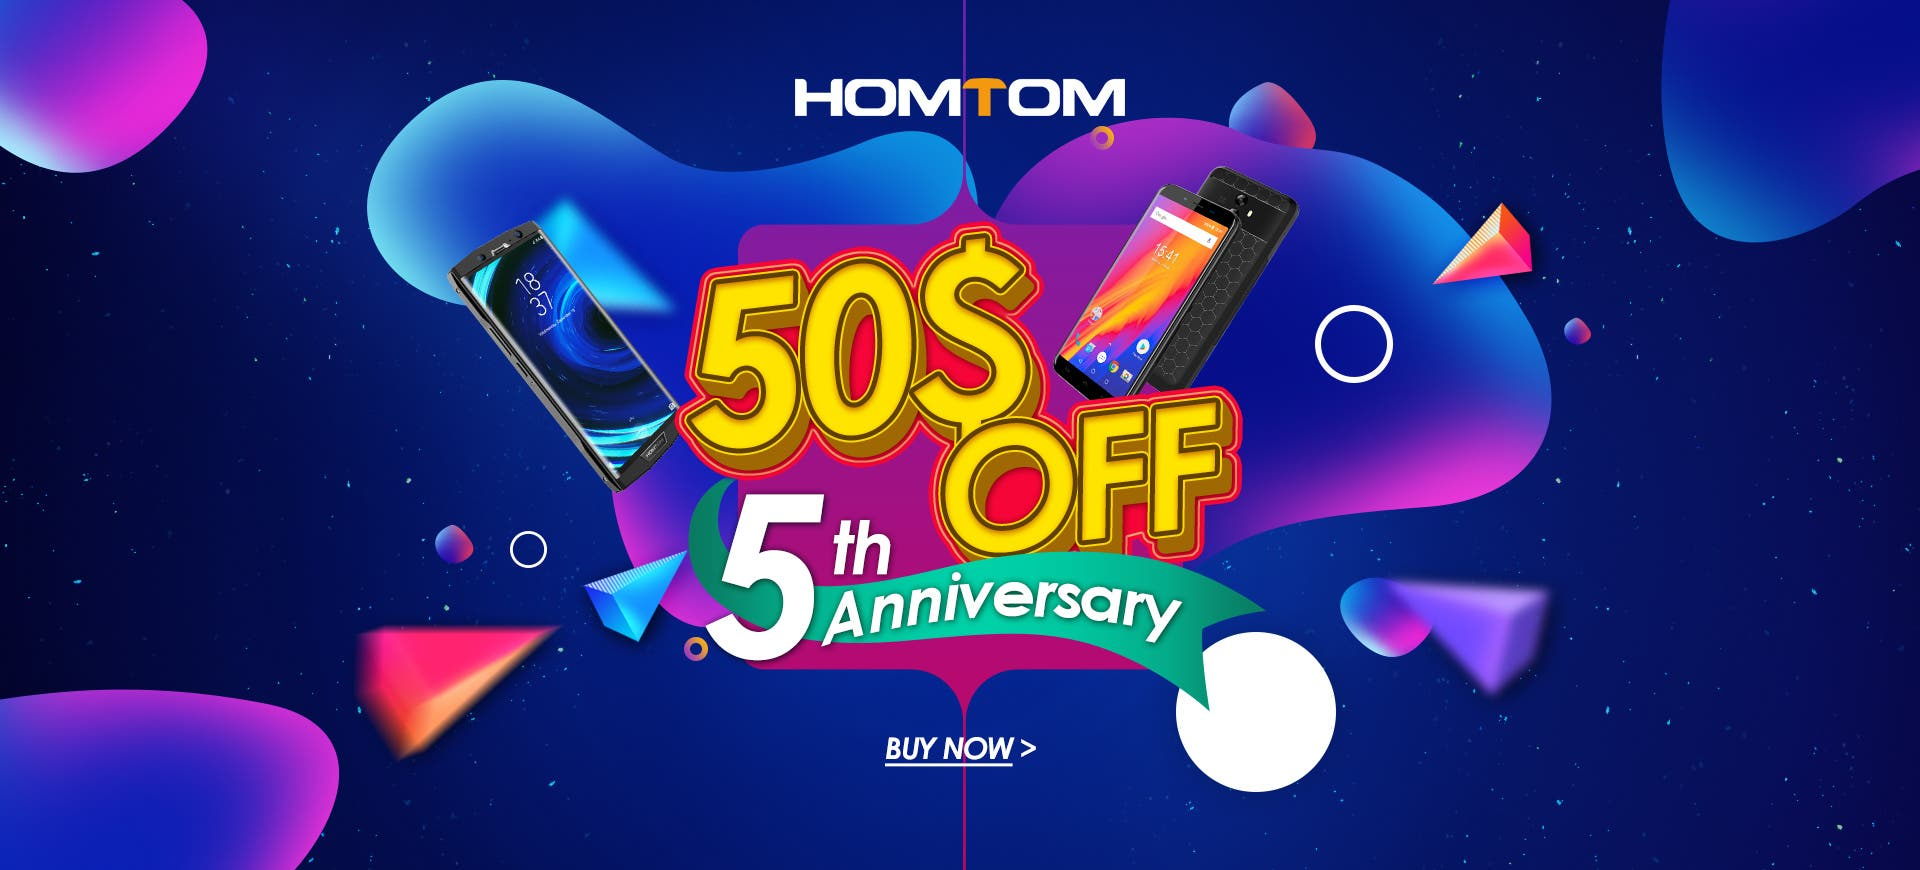 HOMTOM Celebrates Its 5th Year Anniversary